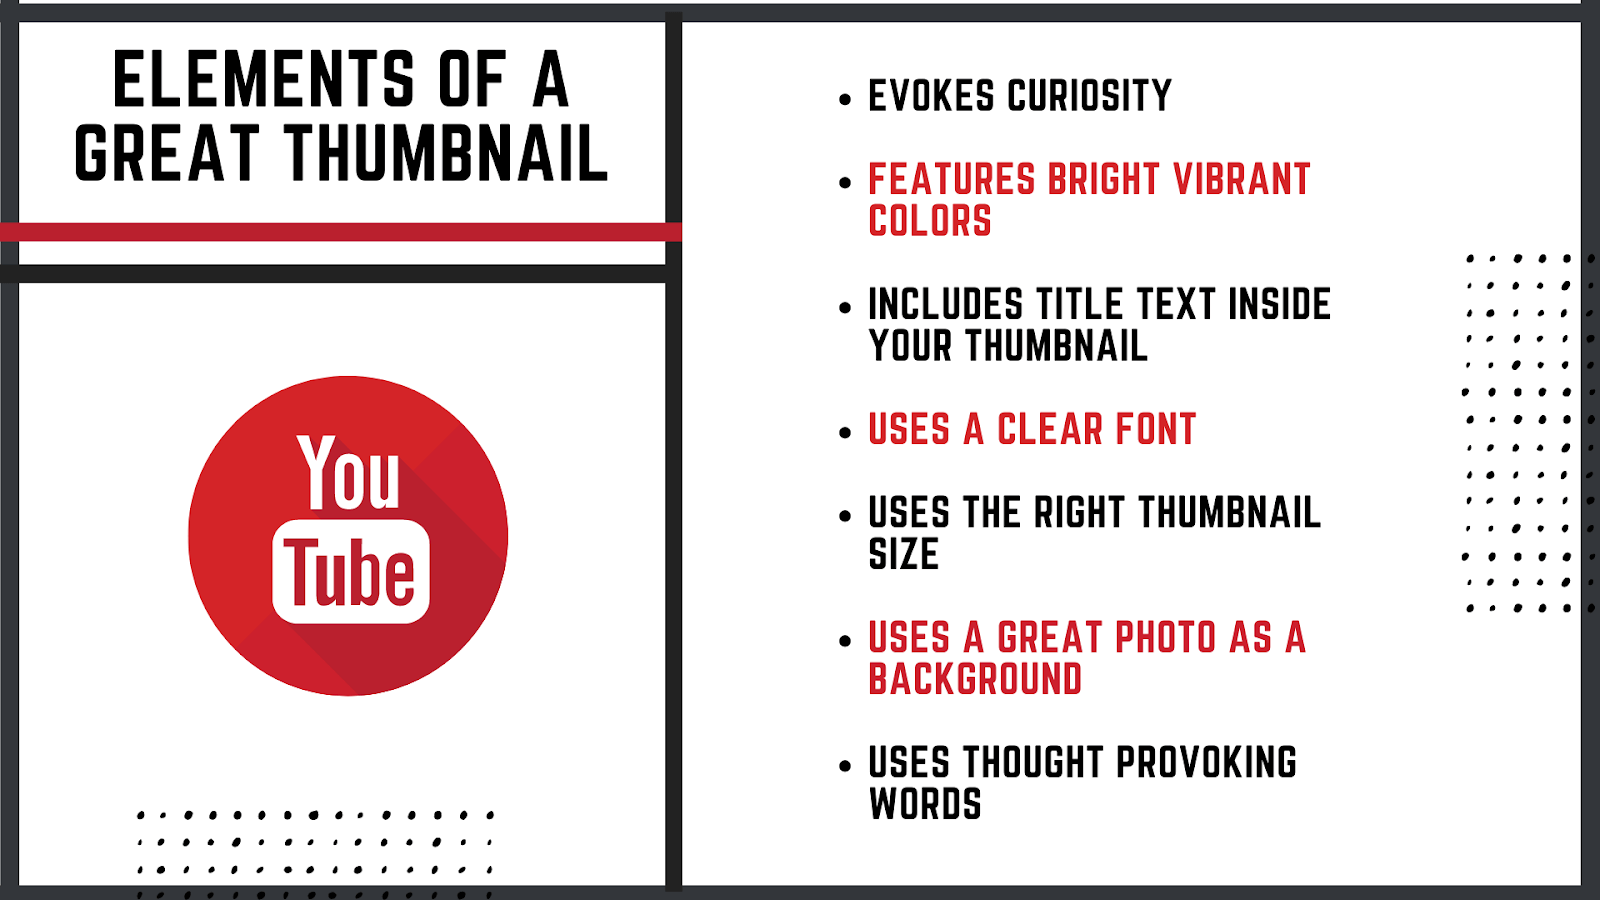 Get to now which elements you have to take into consideration to make a great thumbnail